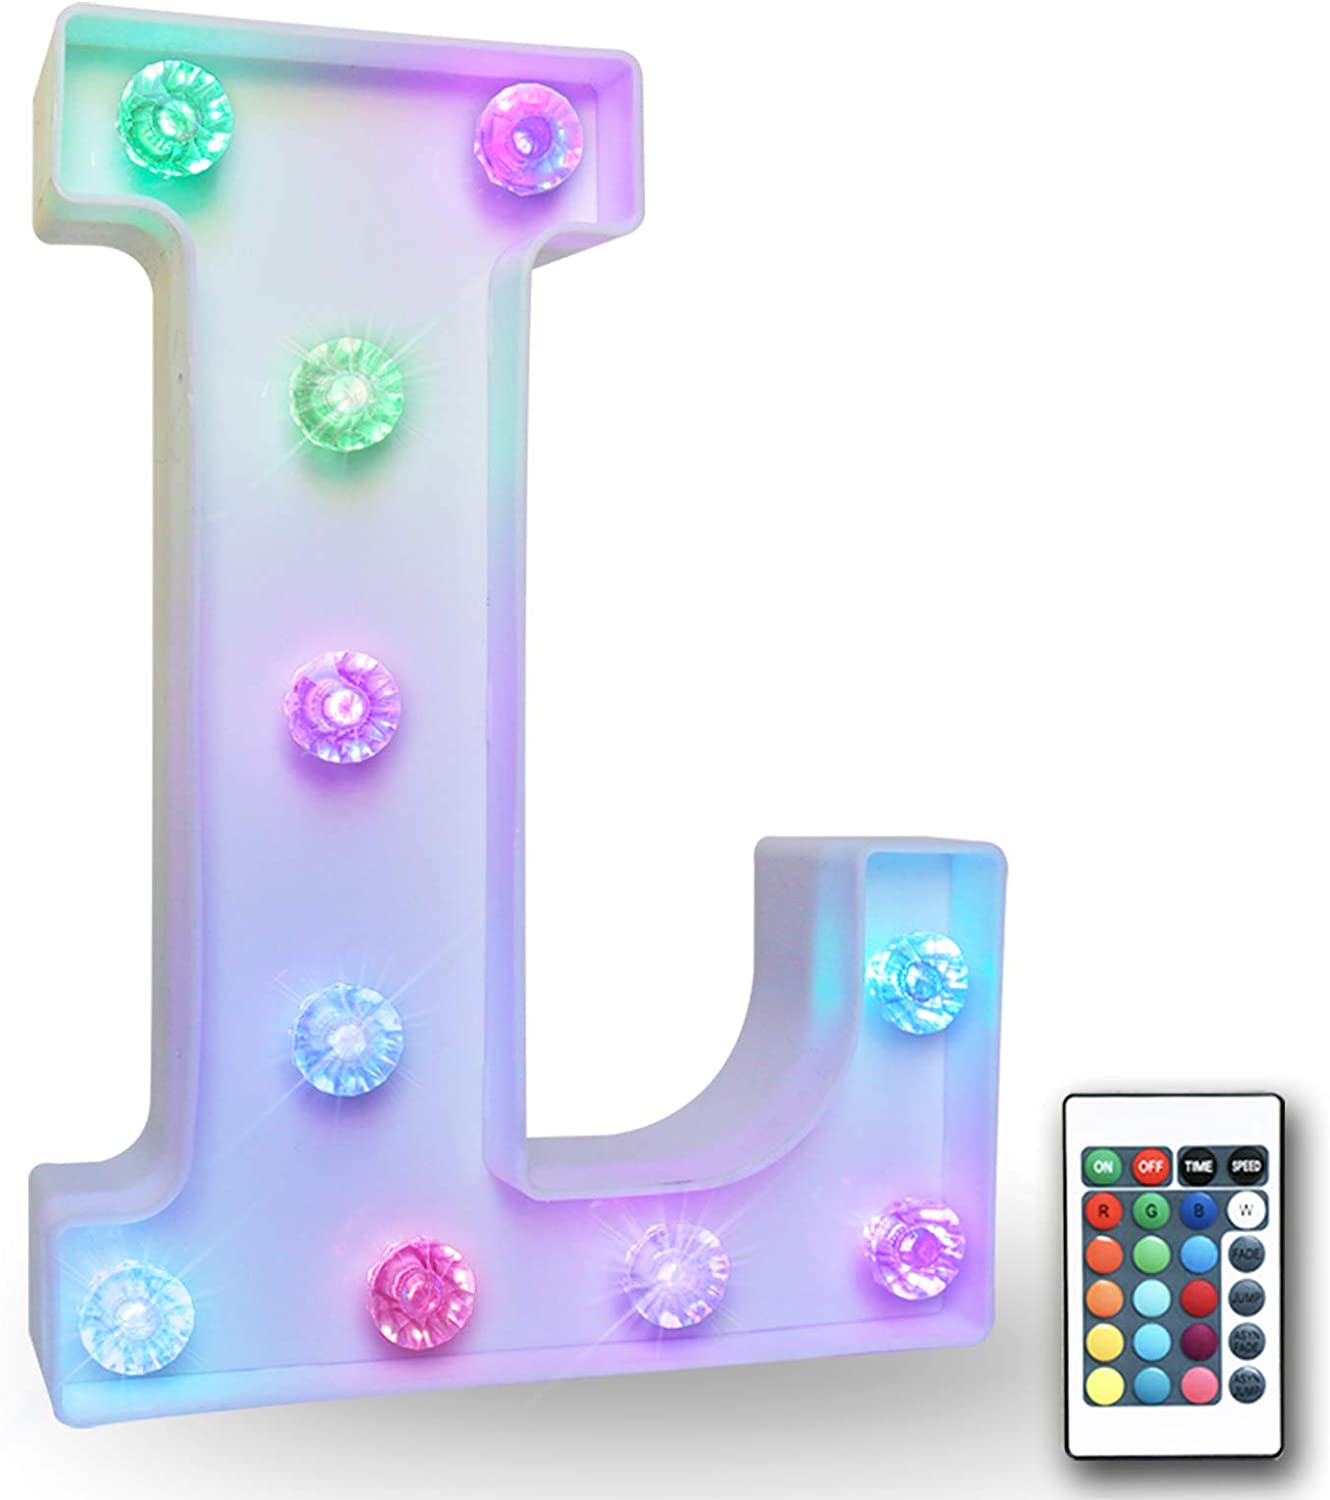 16 Color Changing Marquee Letter with Lights, Battery Power Remote Control Diamond Bulb Words Light Bar Signs for Table, Desk, Party, Wall Decals- RGB Letter L